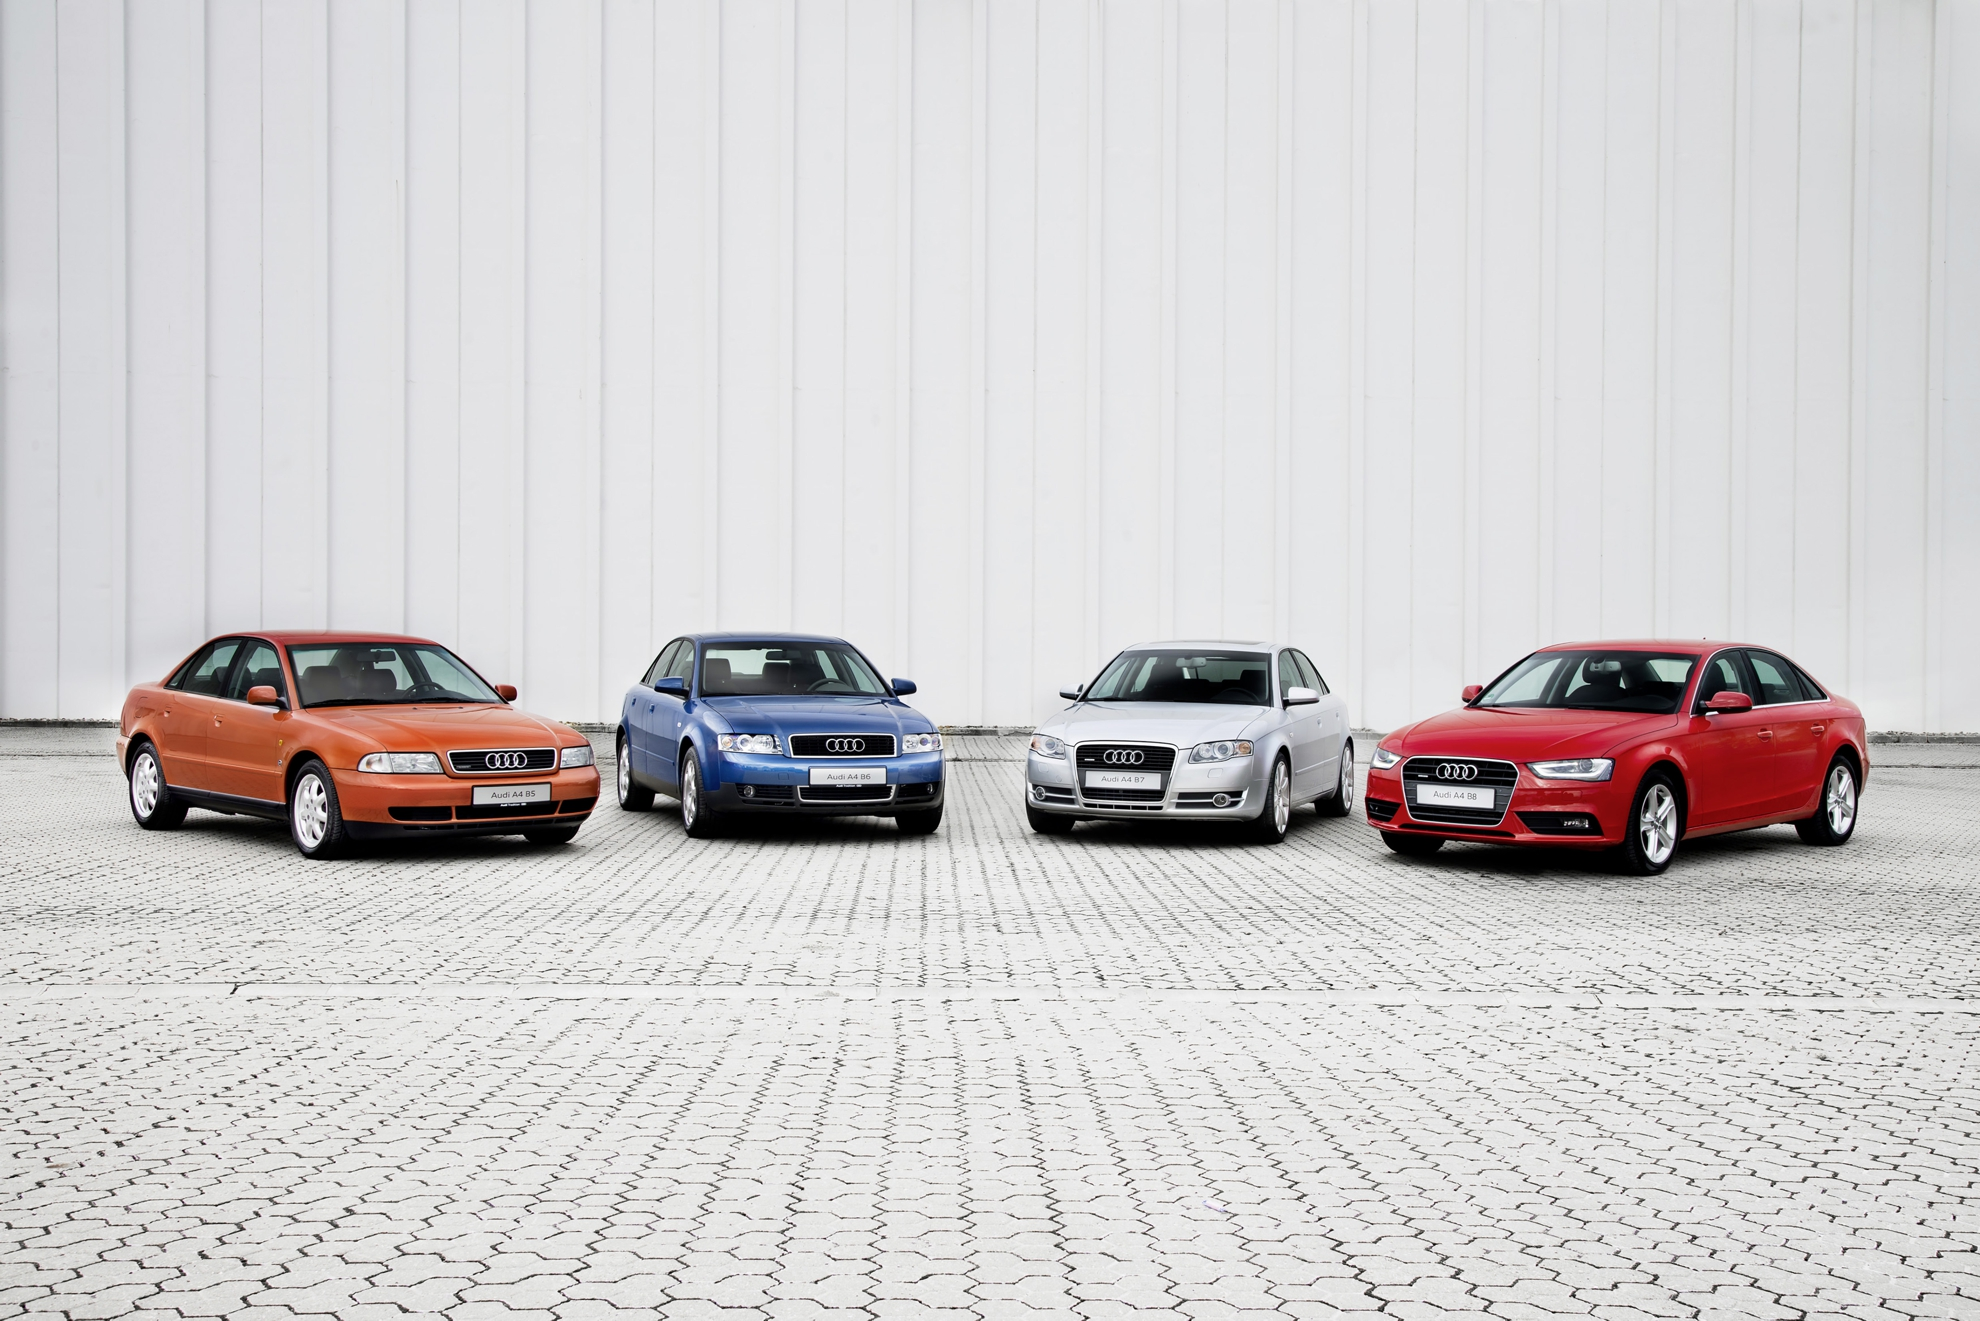 Production Jubilee 20 Years Of Audi A4 At Ingolstadt Plant